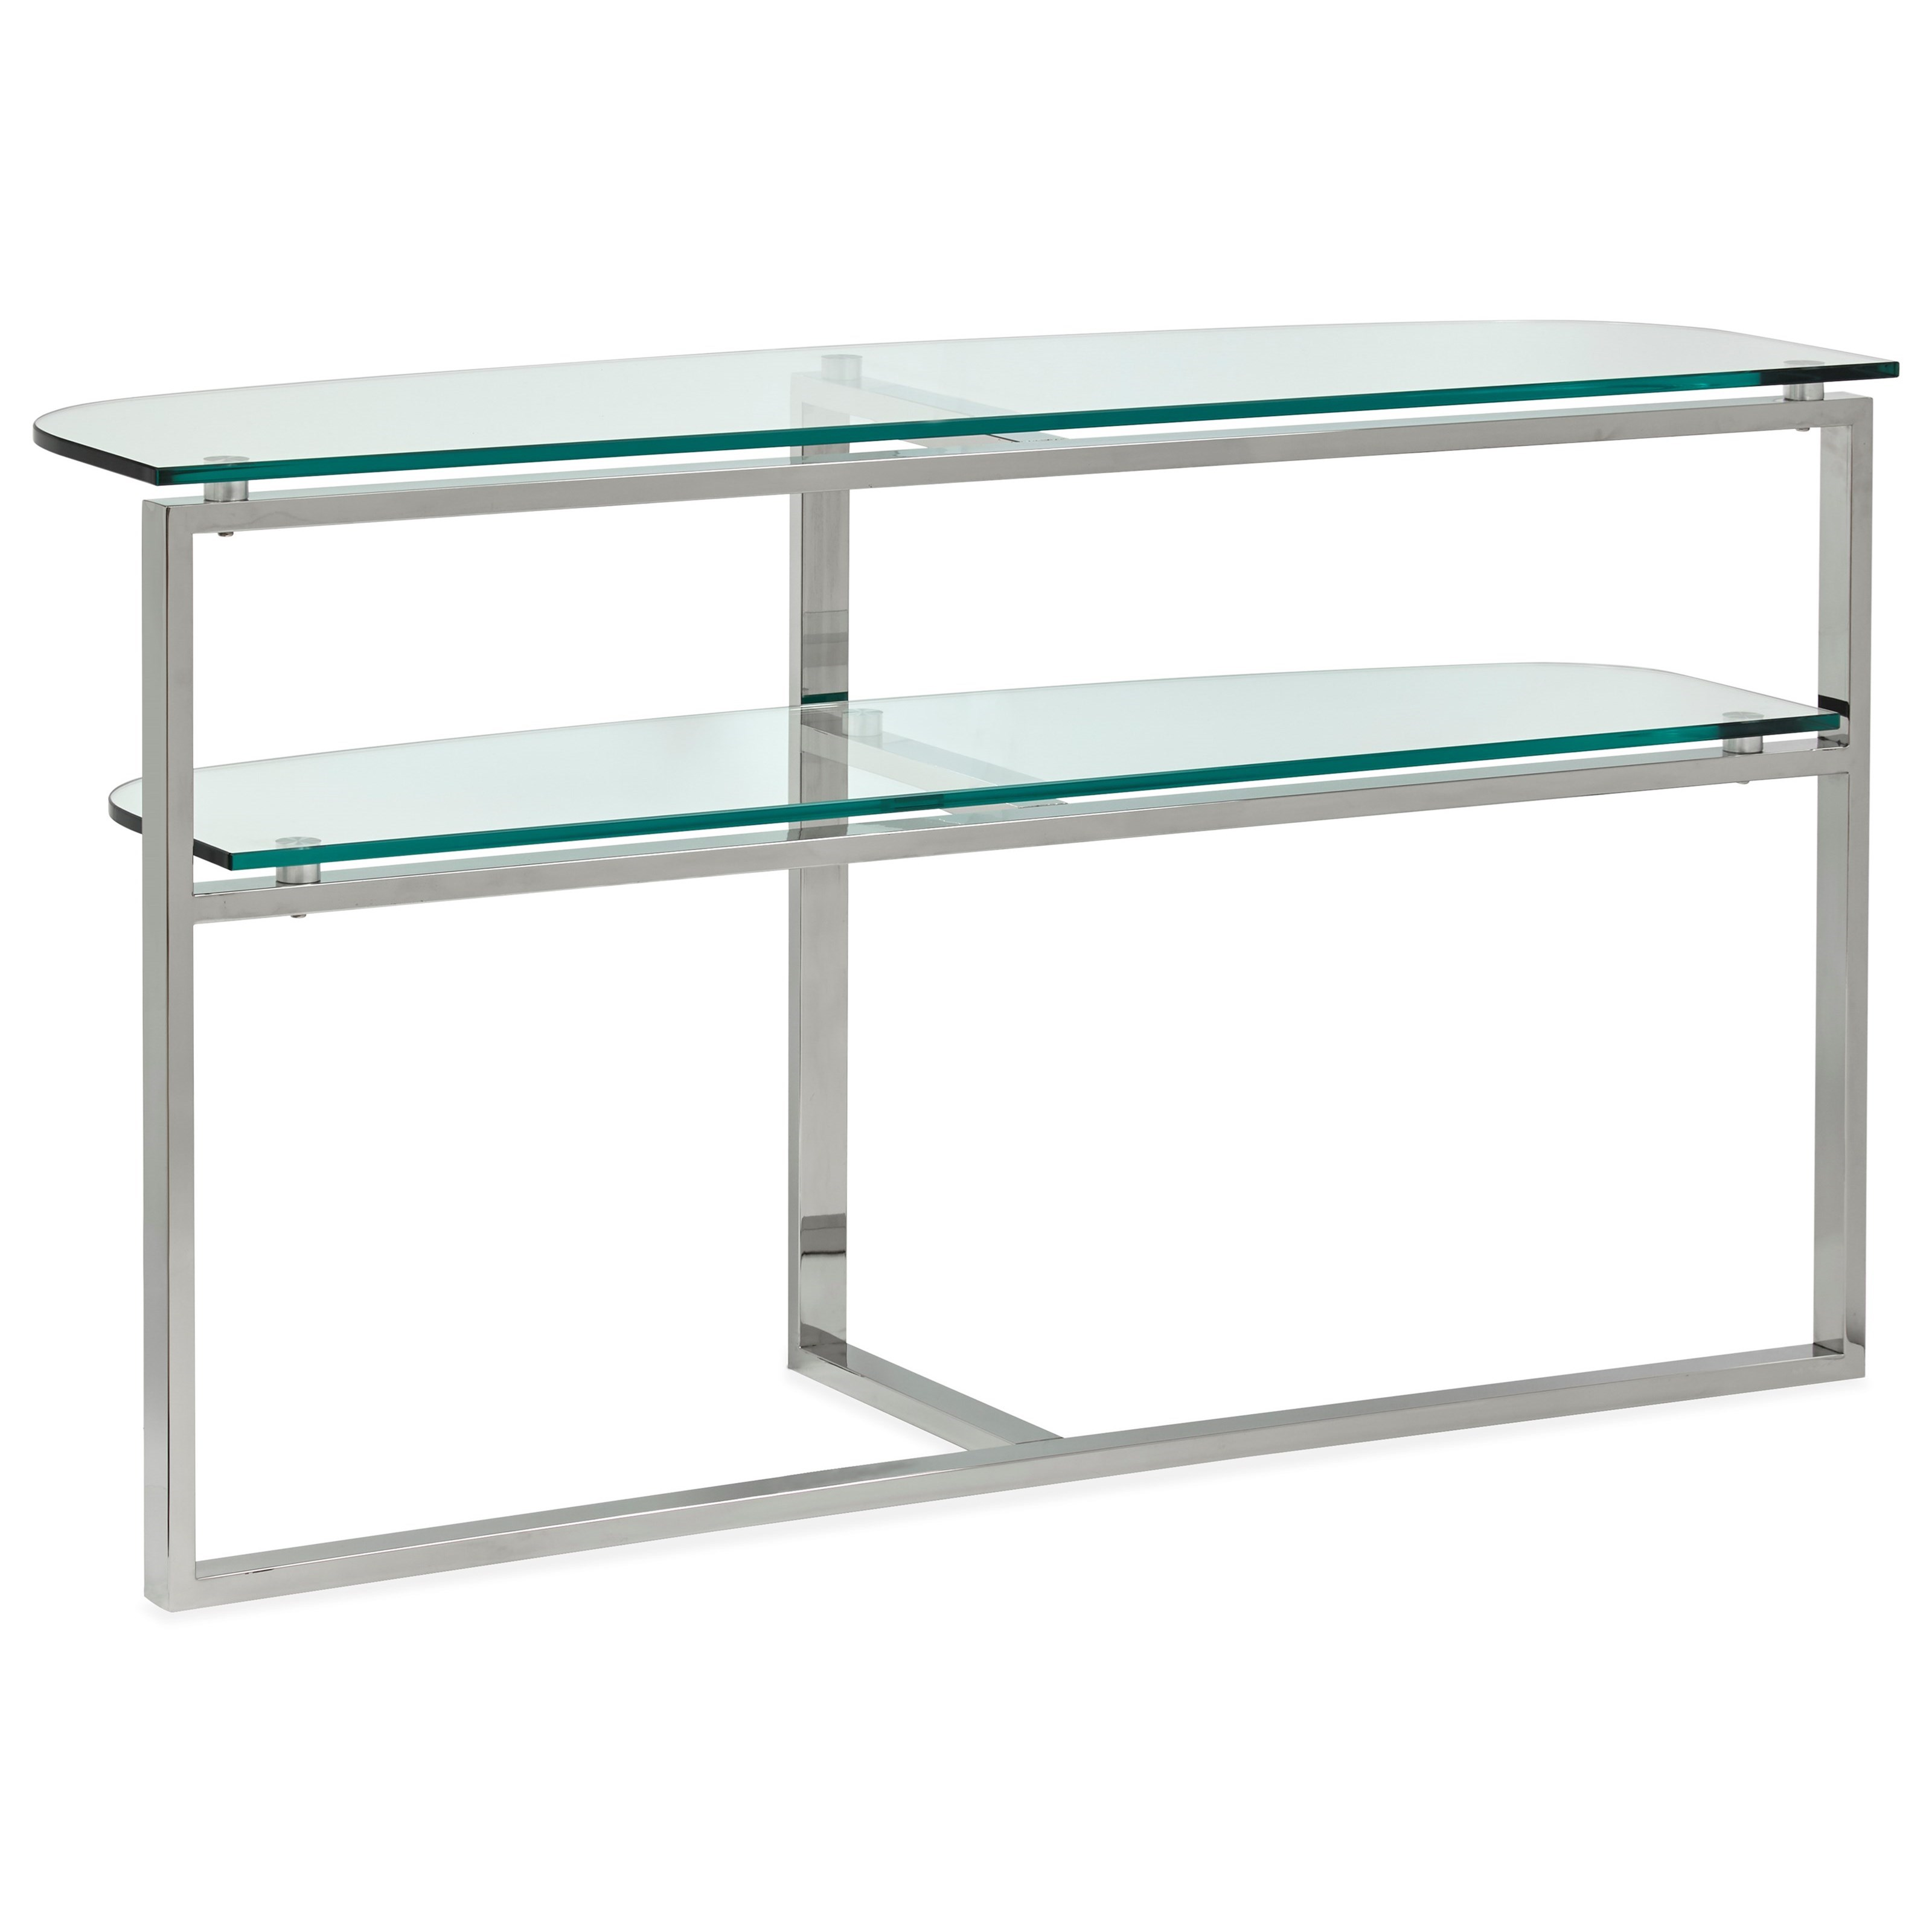 Medlock T5056 Shaped Sofa Table by Magnussen Home at Darvin Furniture